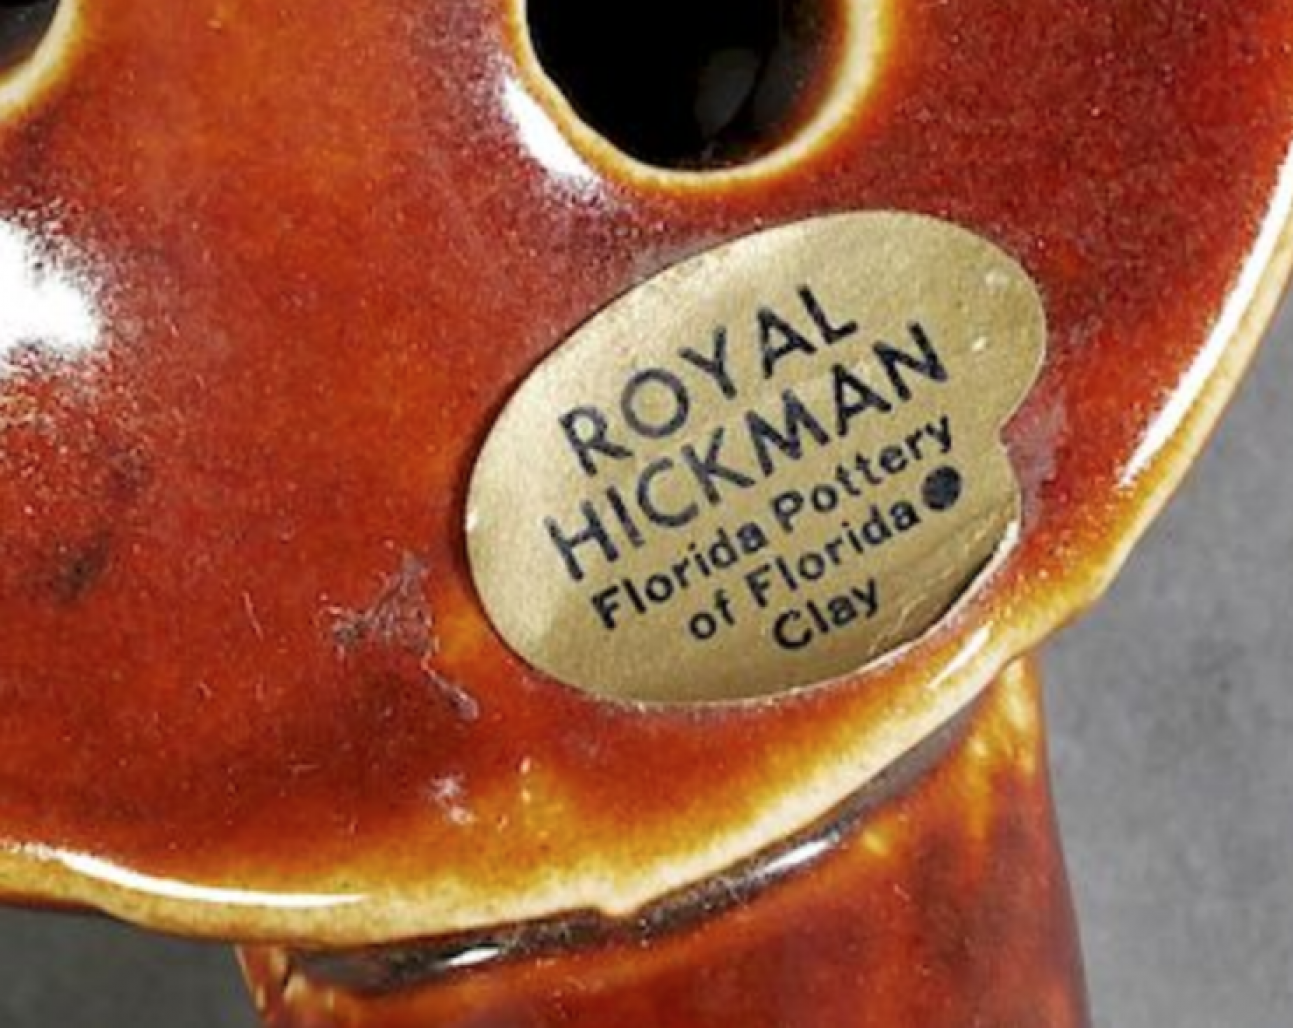 Royal Hickman Pottery Shines